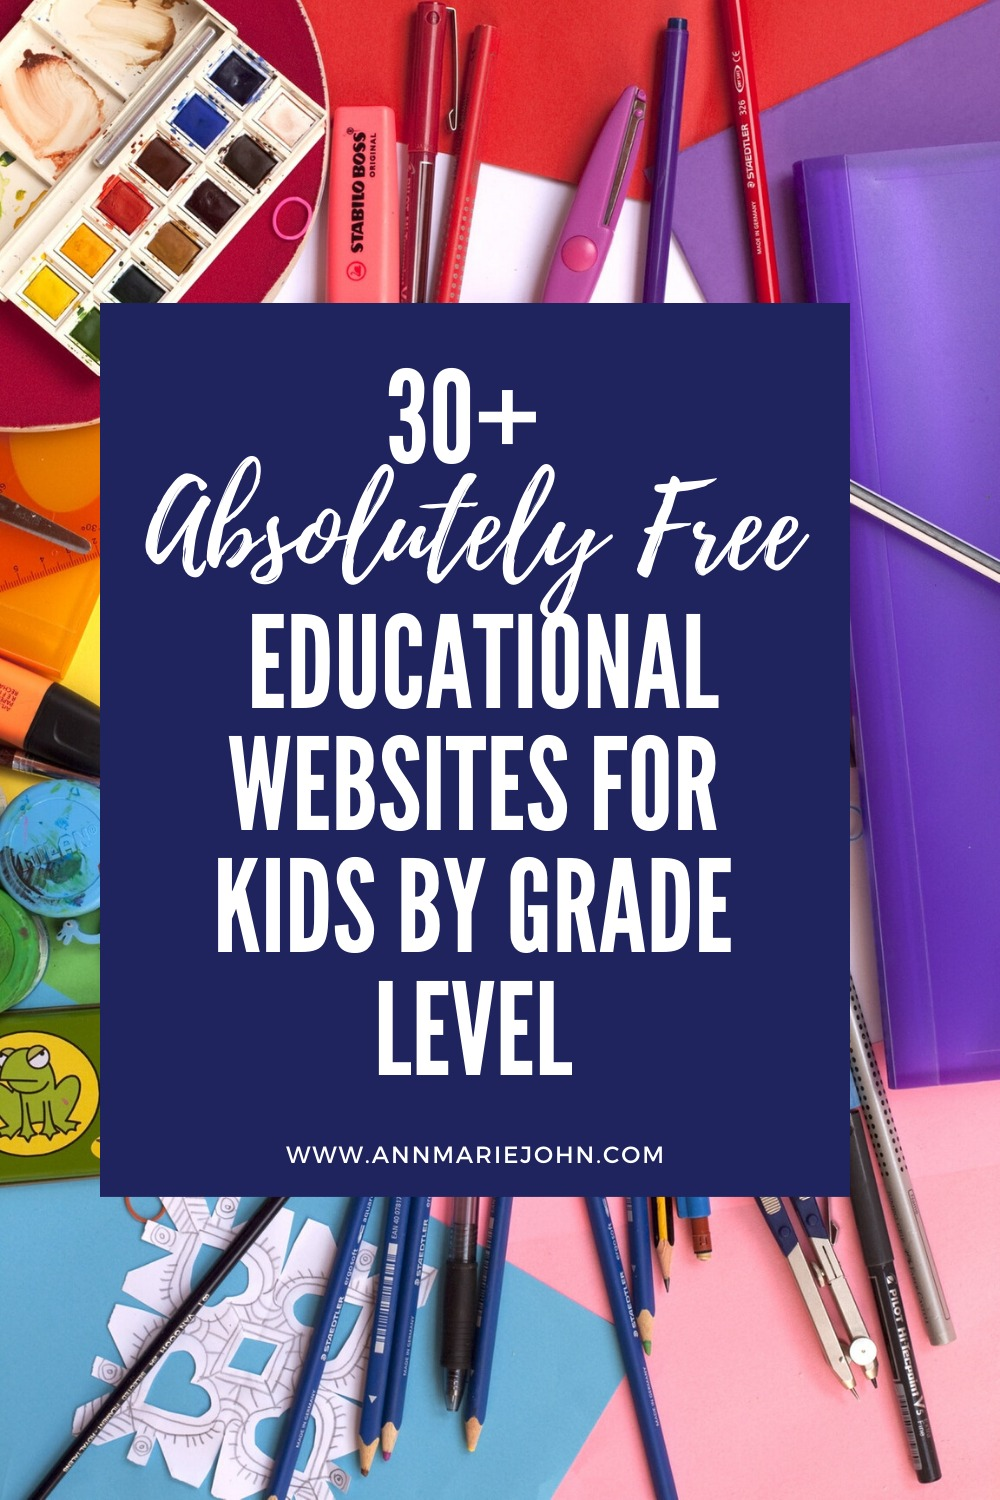 medium resolution of 30+ Totally Free Educational Websites for Kids by Grade Level - AnnMarie  John